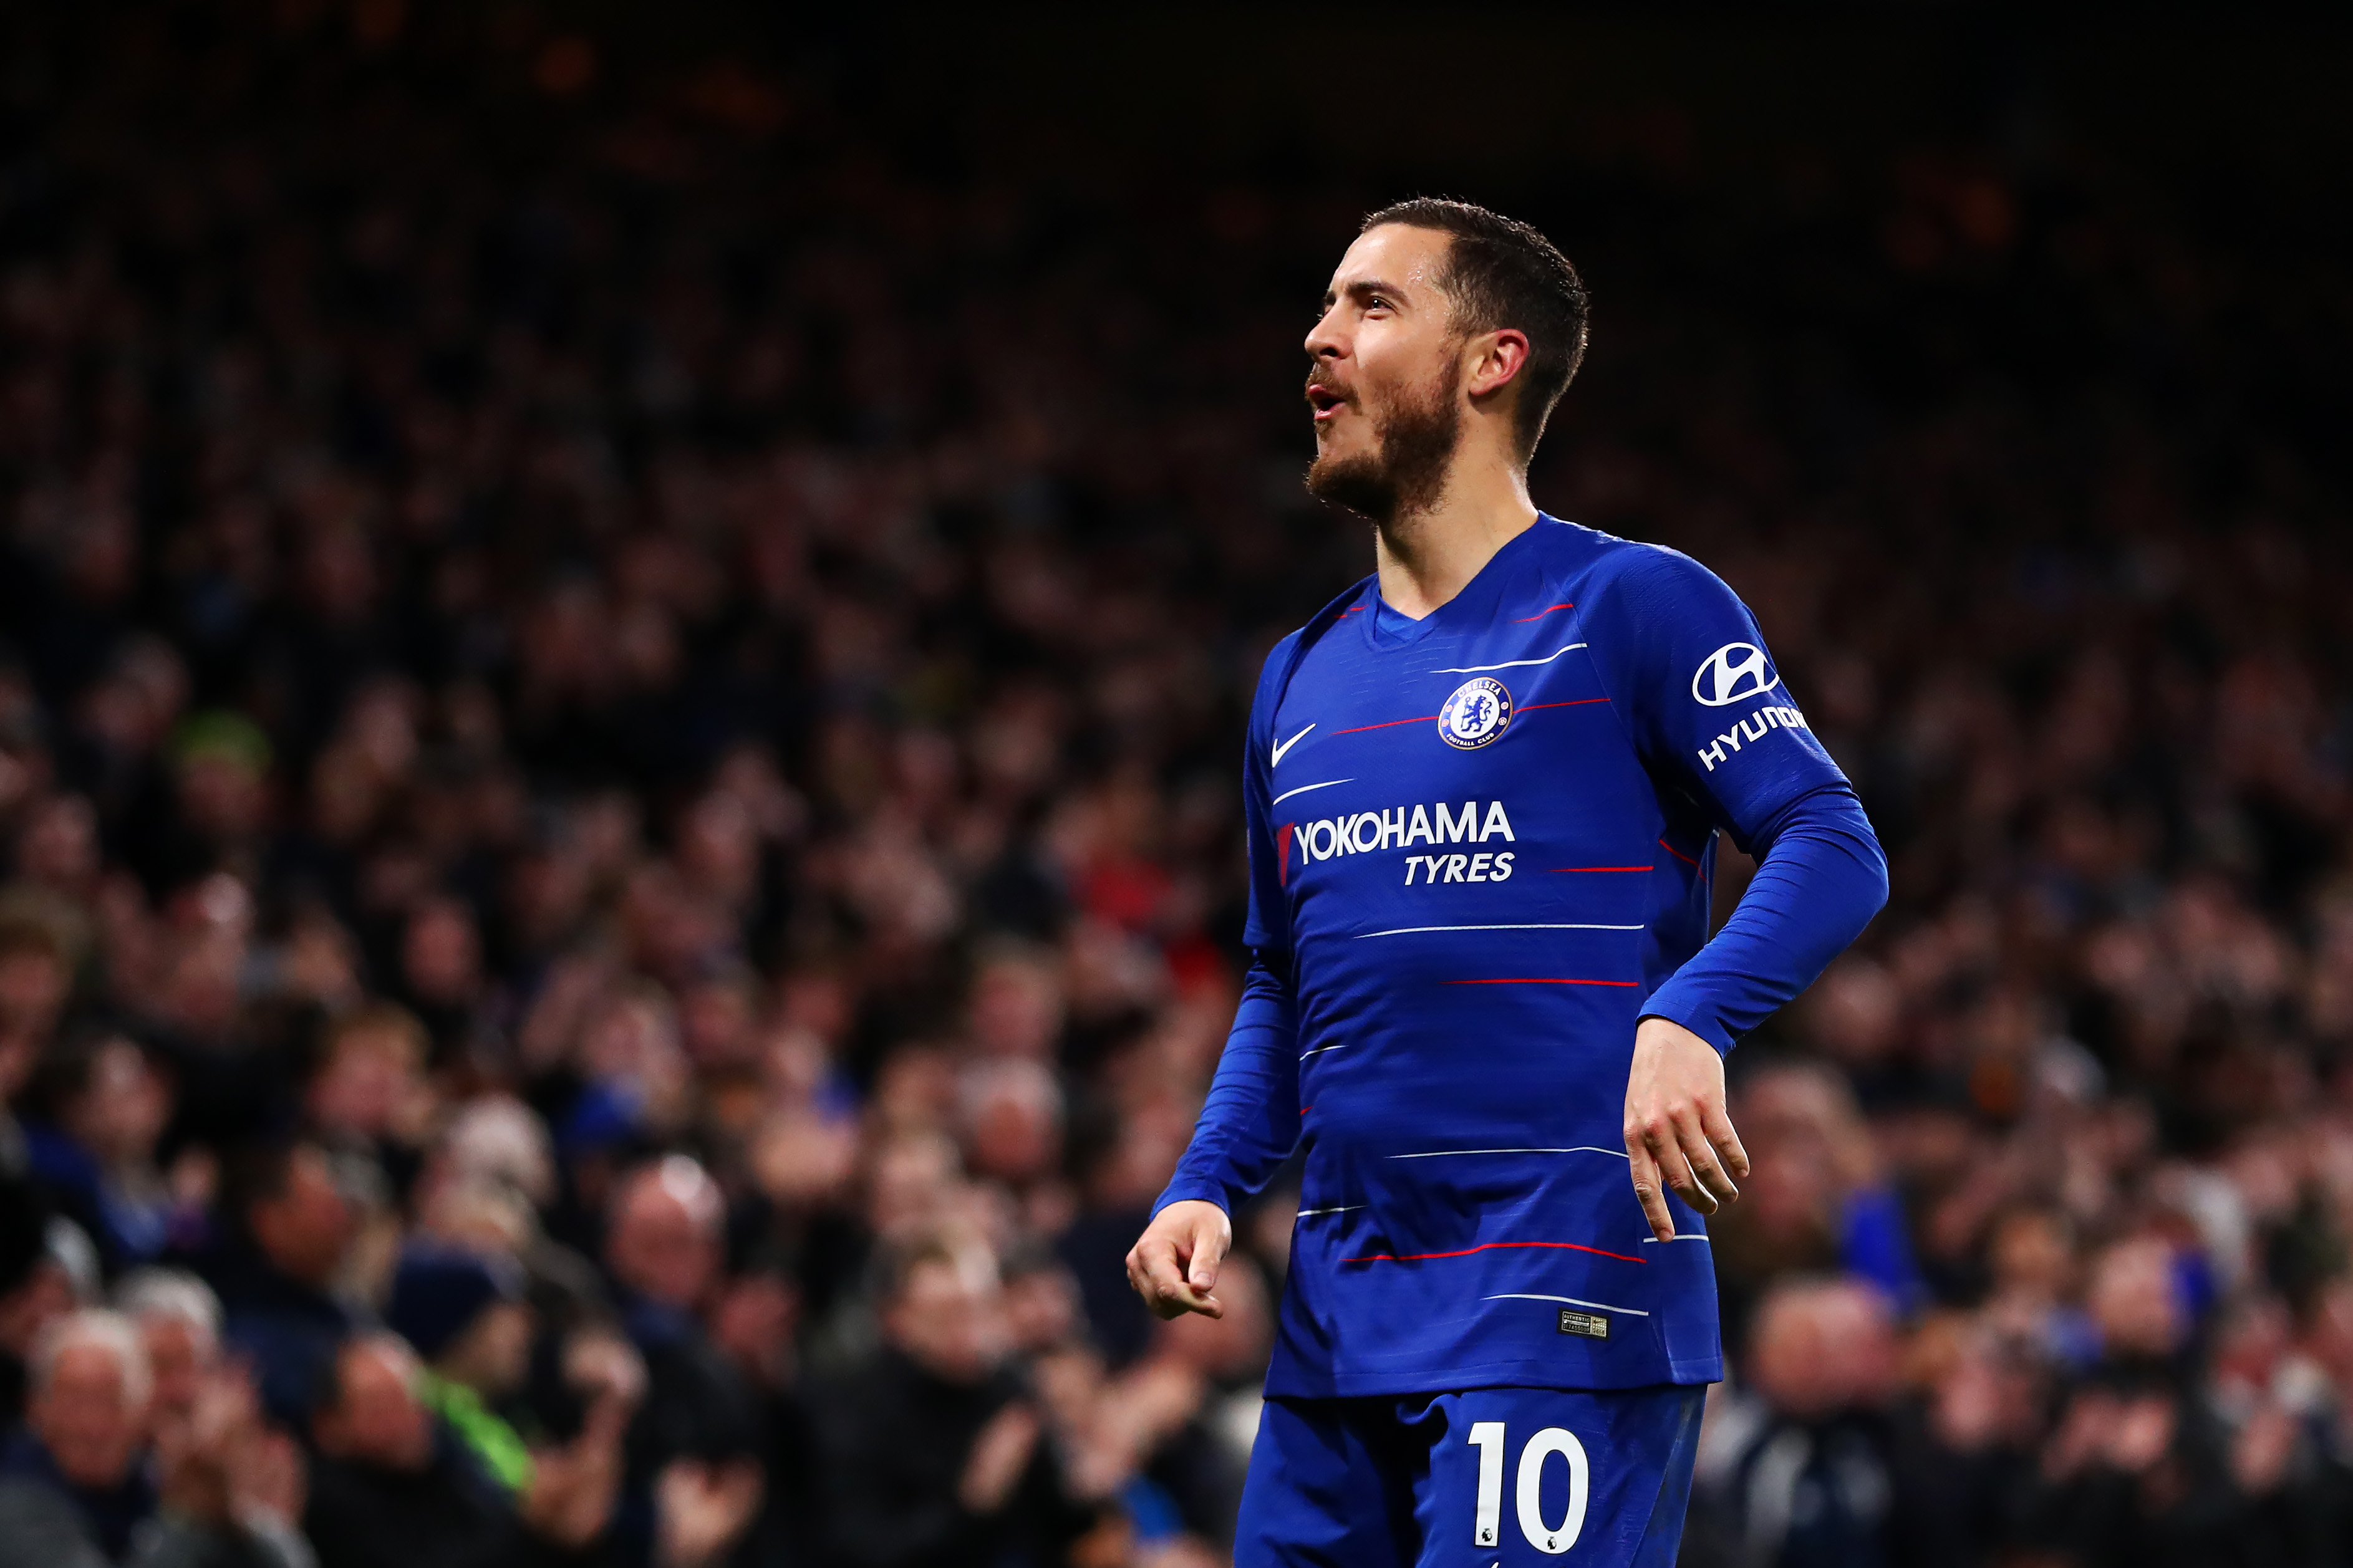 Hazard was Chelsea's main threat this season. (Photo by Dan Istitene/Getty Images)